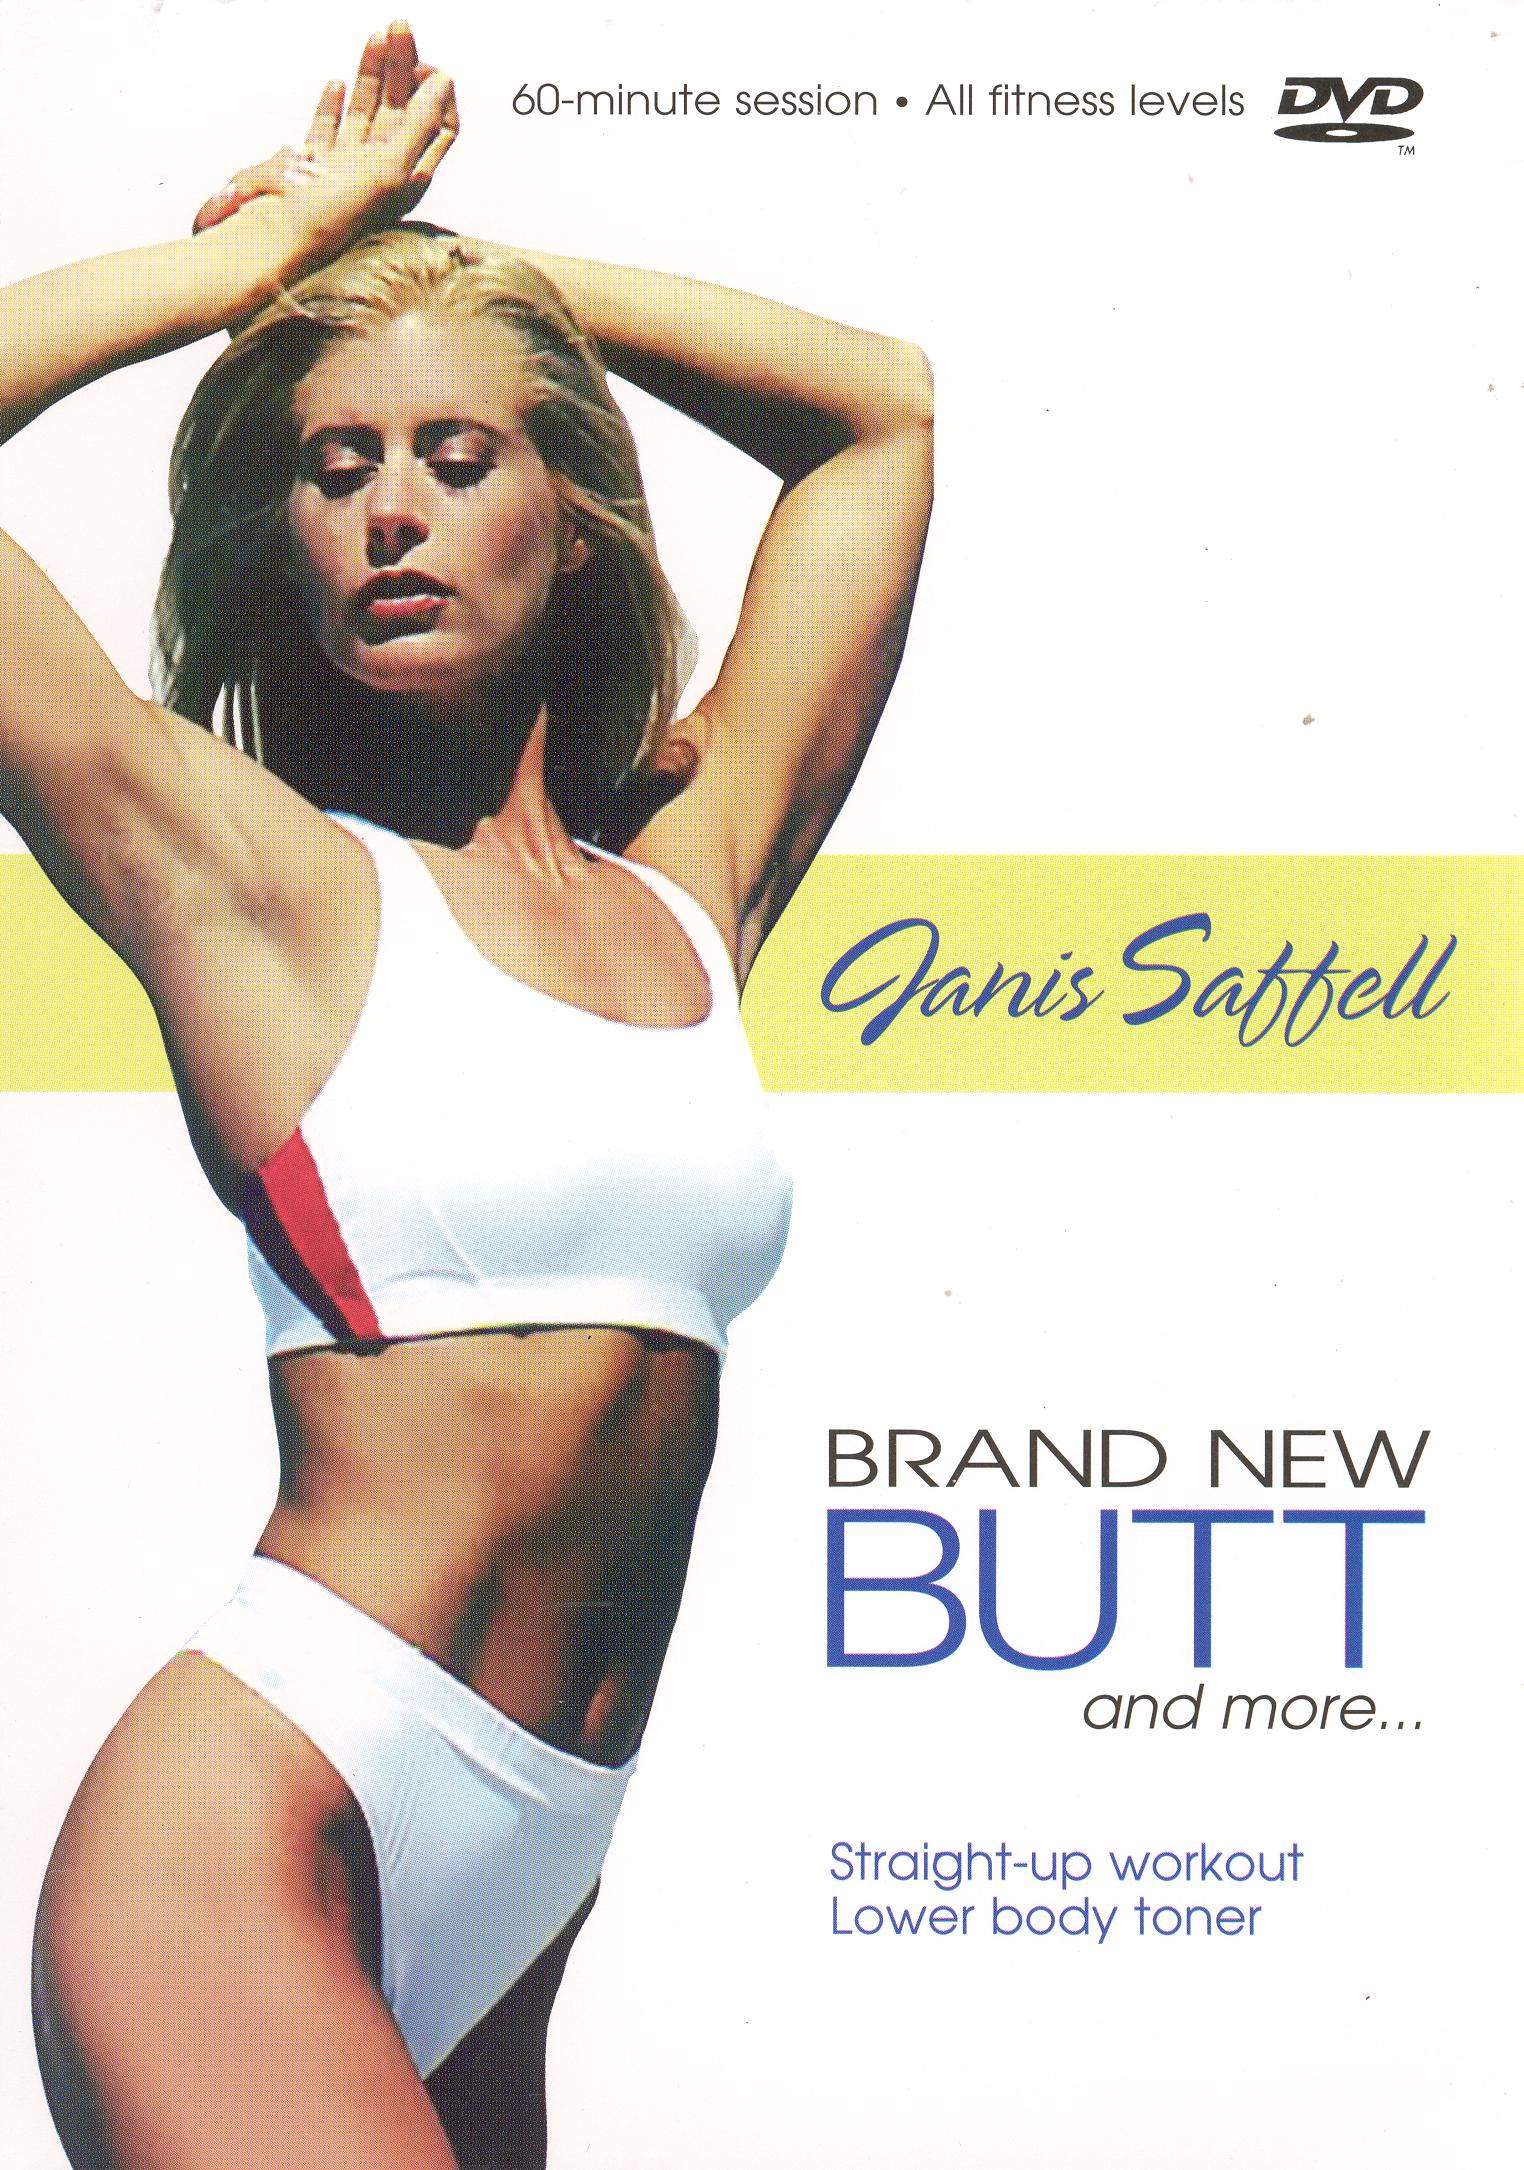 Janis Saffell: Brand New Butt and More...